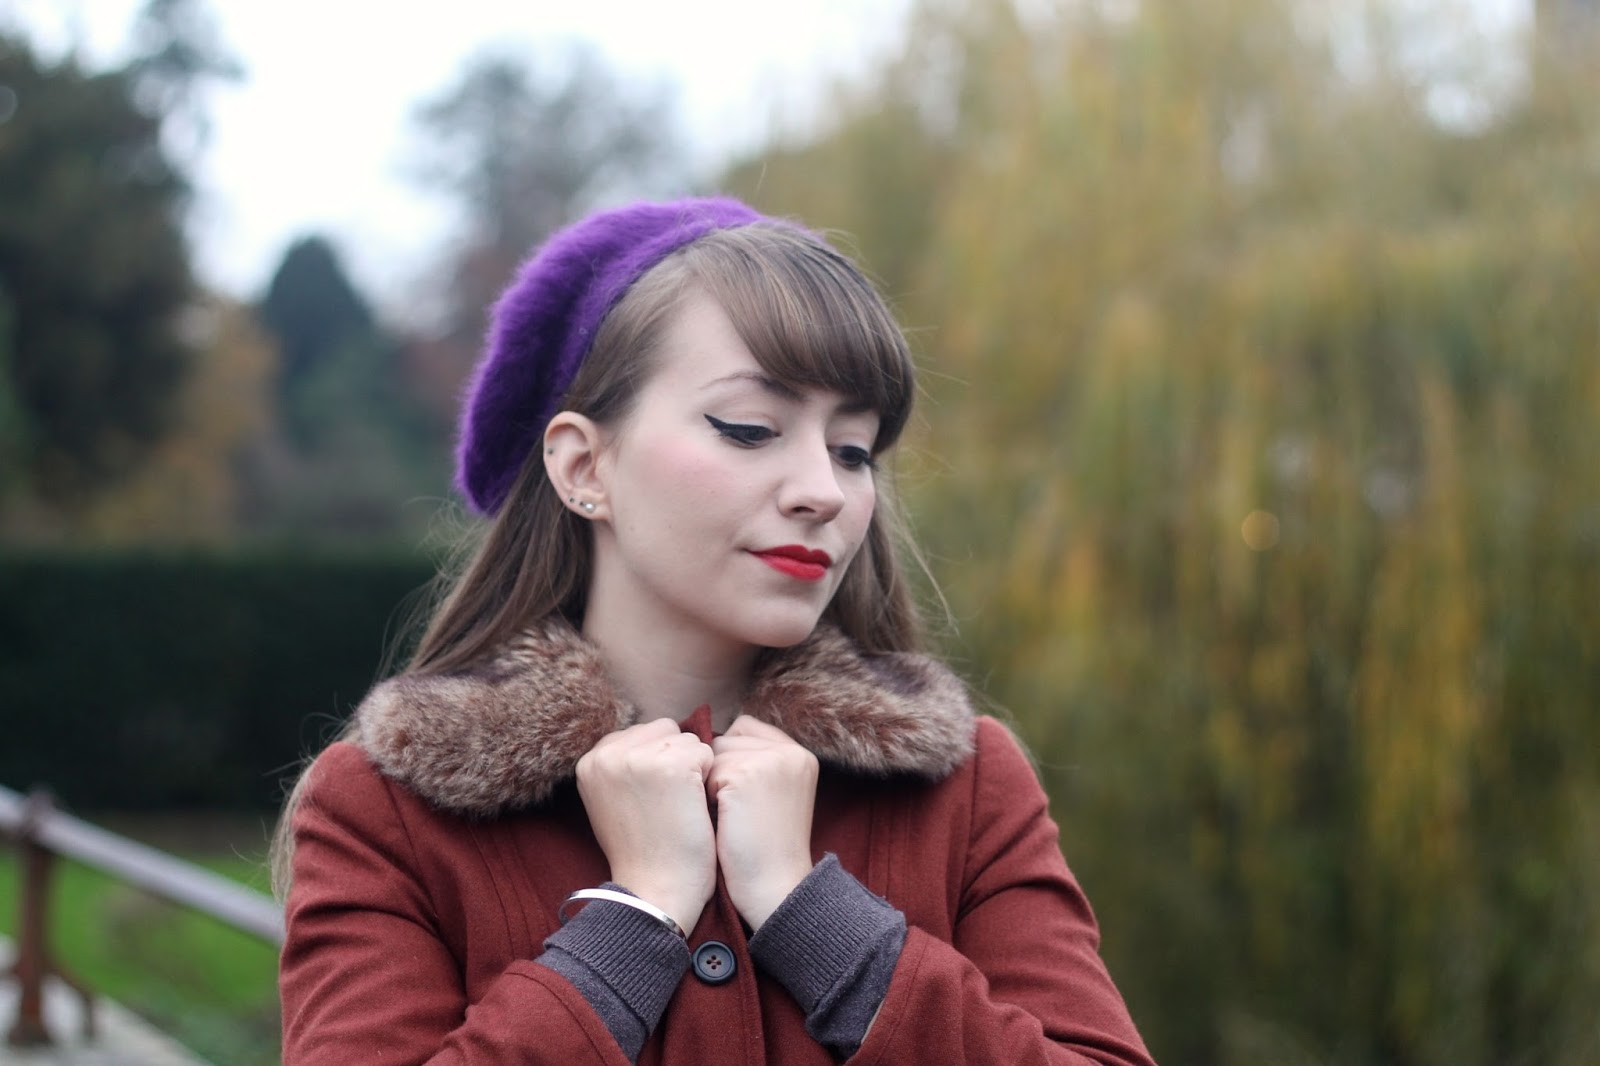 Purple fluffy beret with vintage inspired jacket